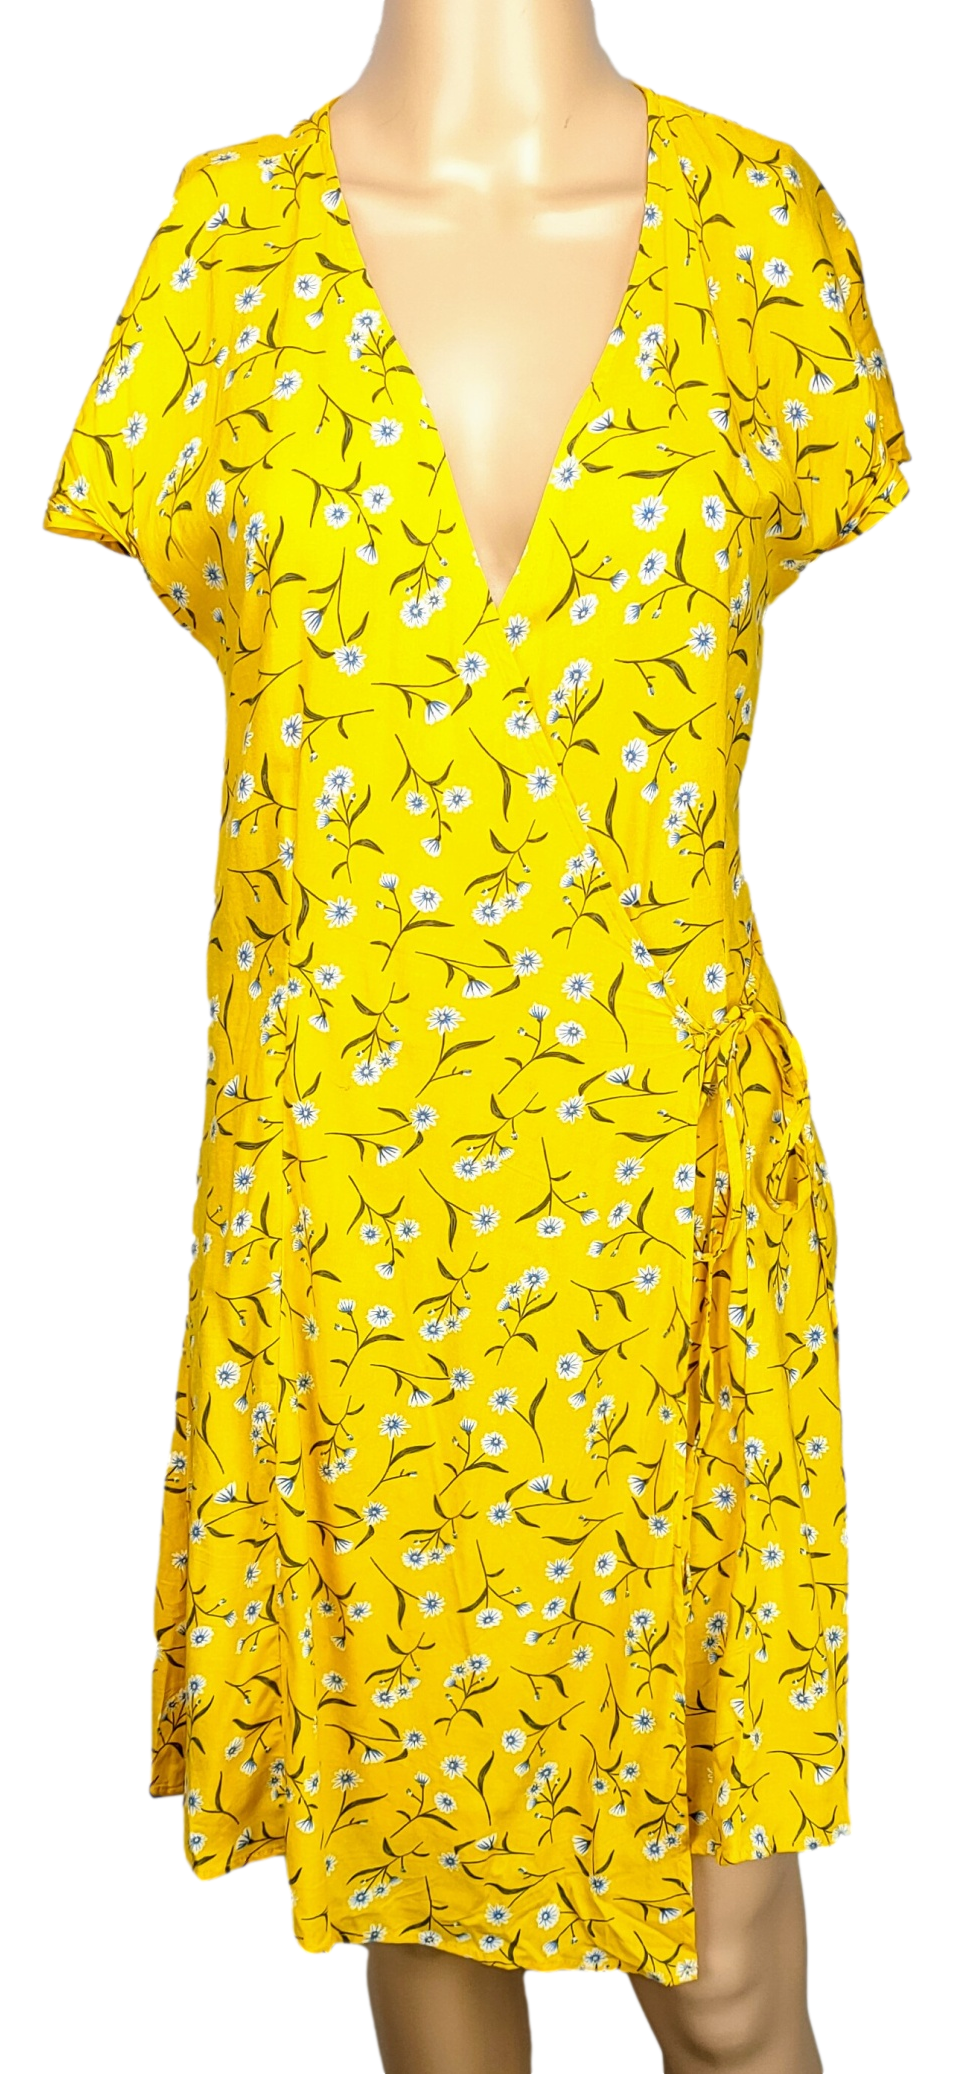 Robe Divided -Taille 36